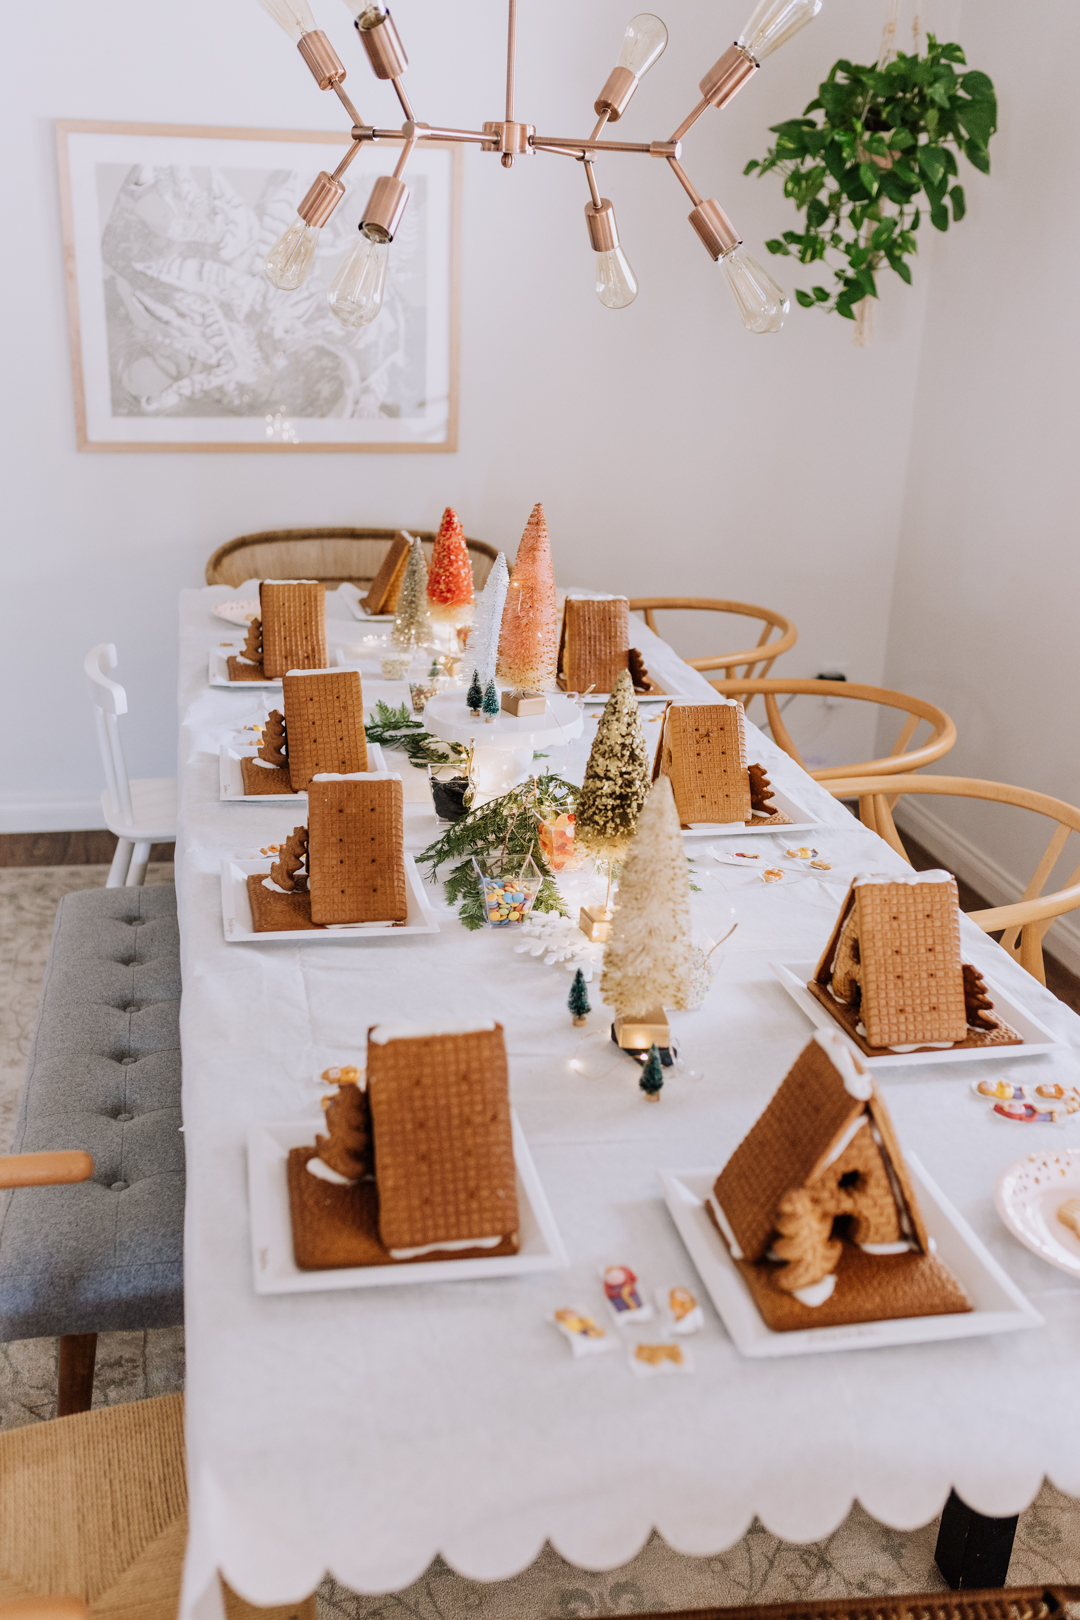 all of the gingerbread houses lined up, ready to decorate! | thelovedesignedlife.com #holidays #gingerbreadhouse #christmastime #baking #holidaypartyidea